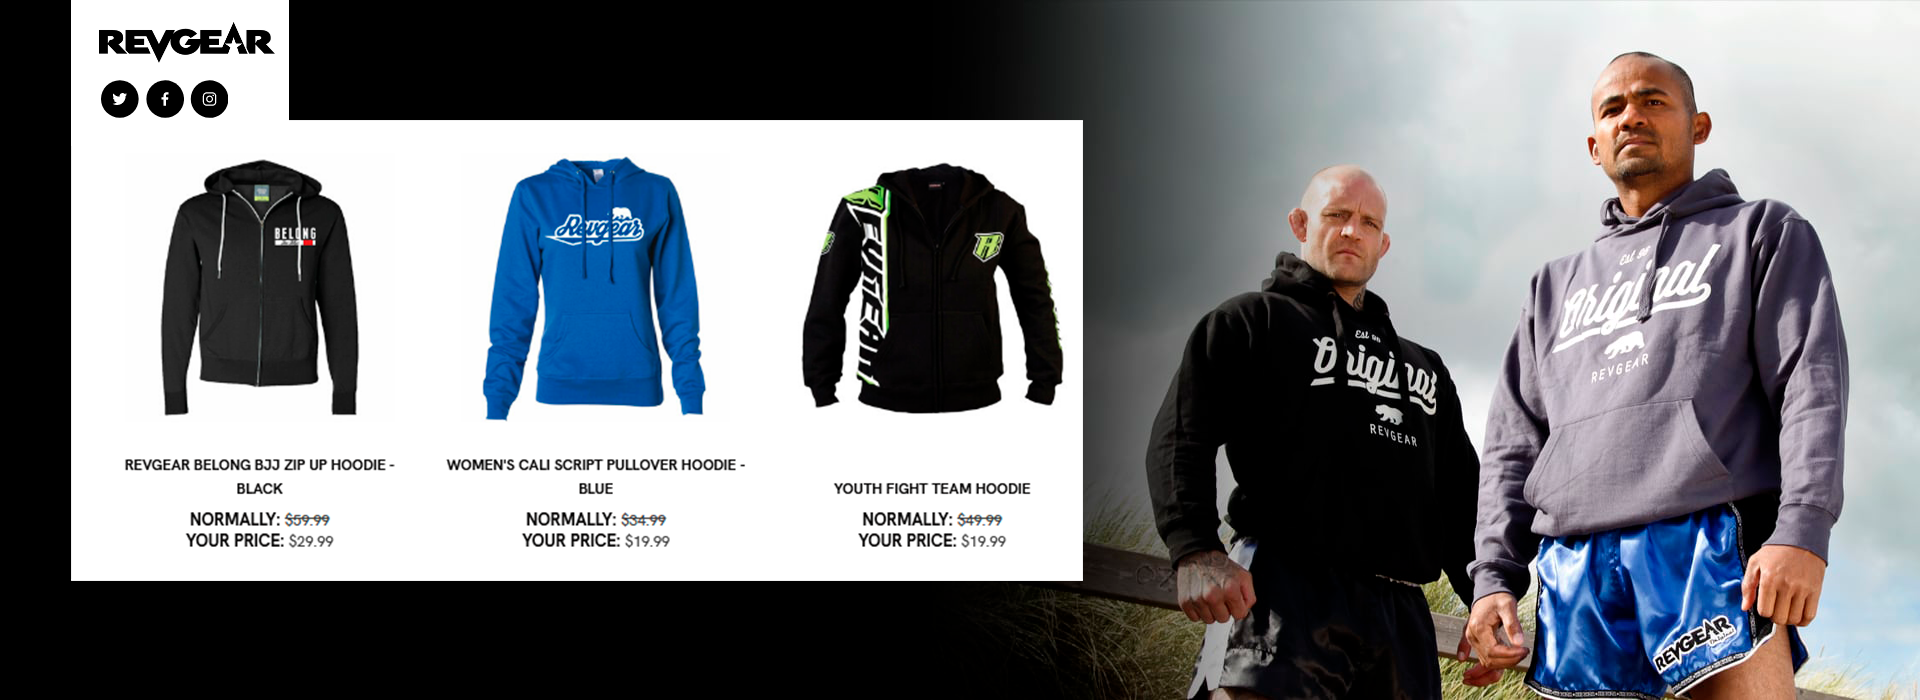 Revgear Hoodies and Jackets